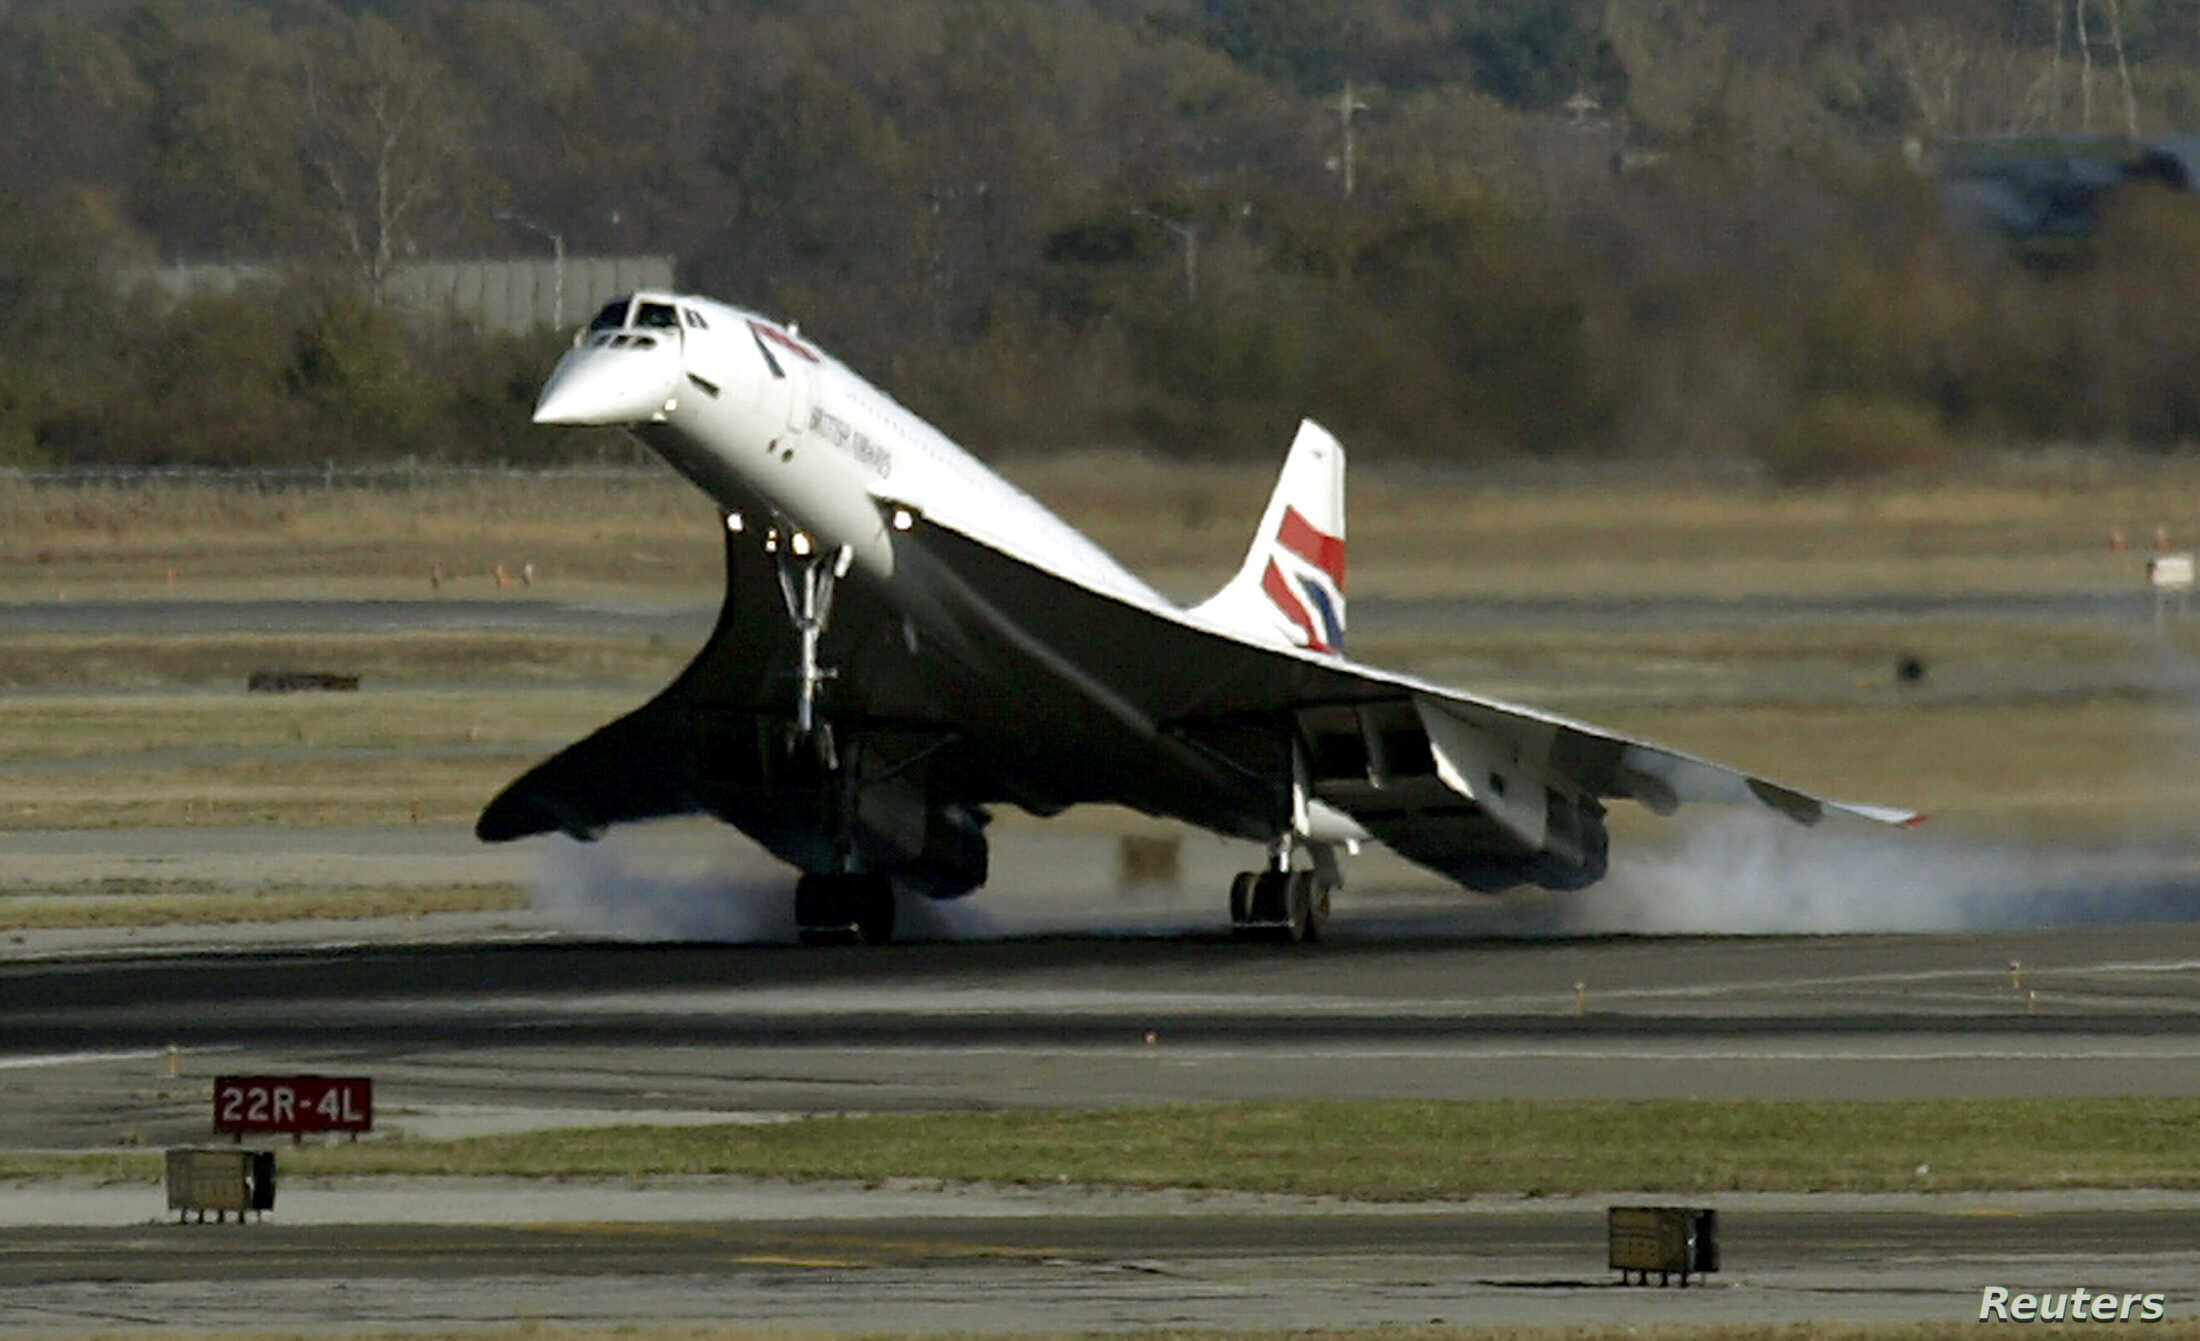 50 Years After Concorde, US Start-Up Eyes Supersonic Future | Voice